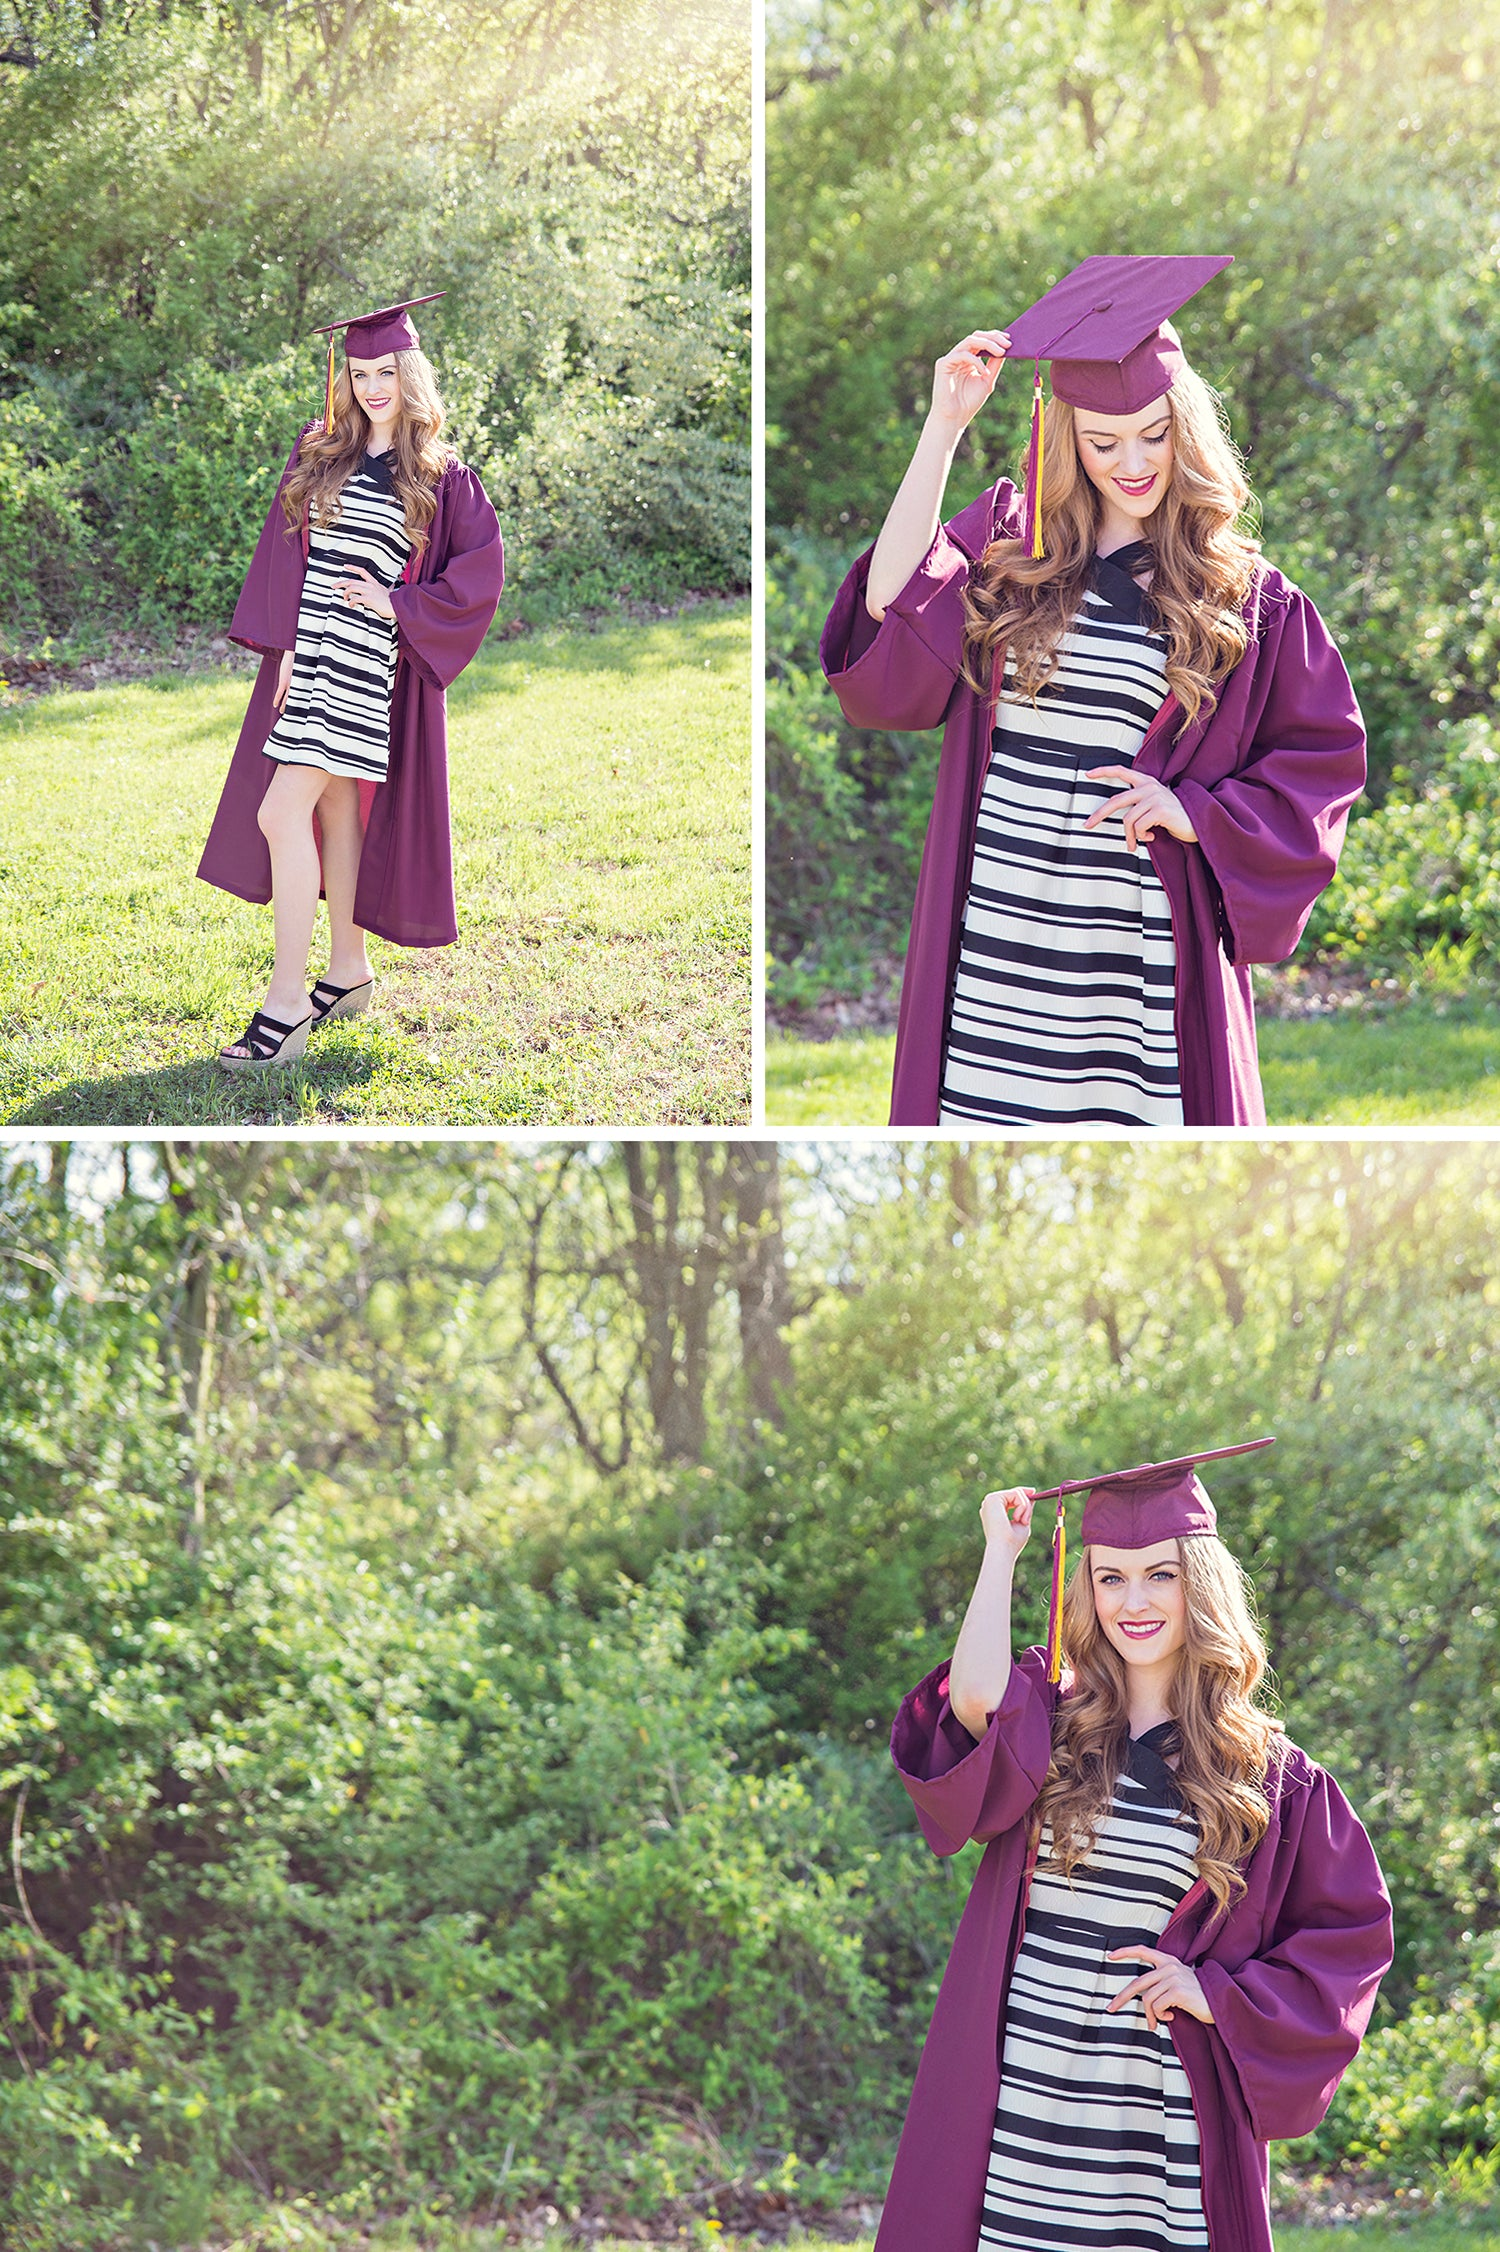 Shop women's graduation dresses at Eccentrics Boutique